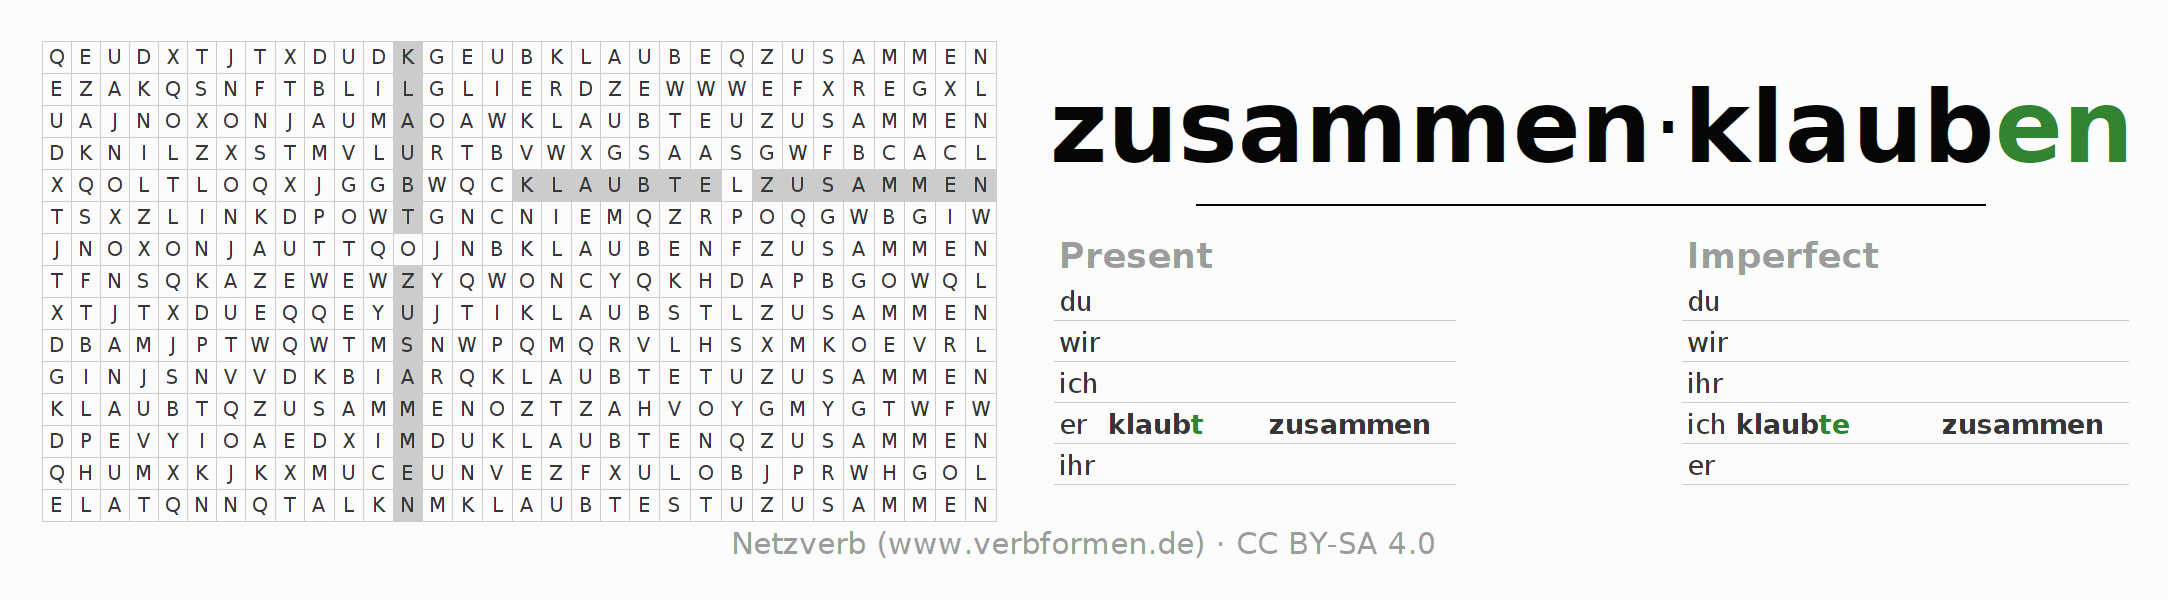 Word search puzzle for the conjugation of the verb zusammenklauben